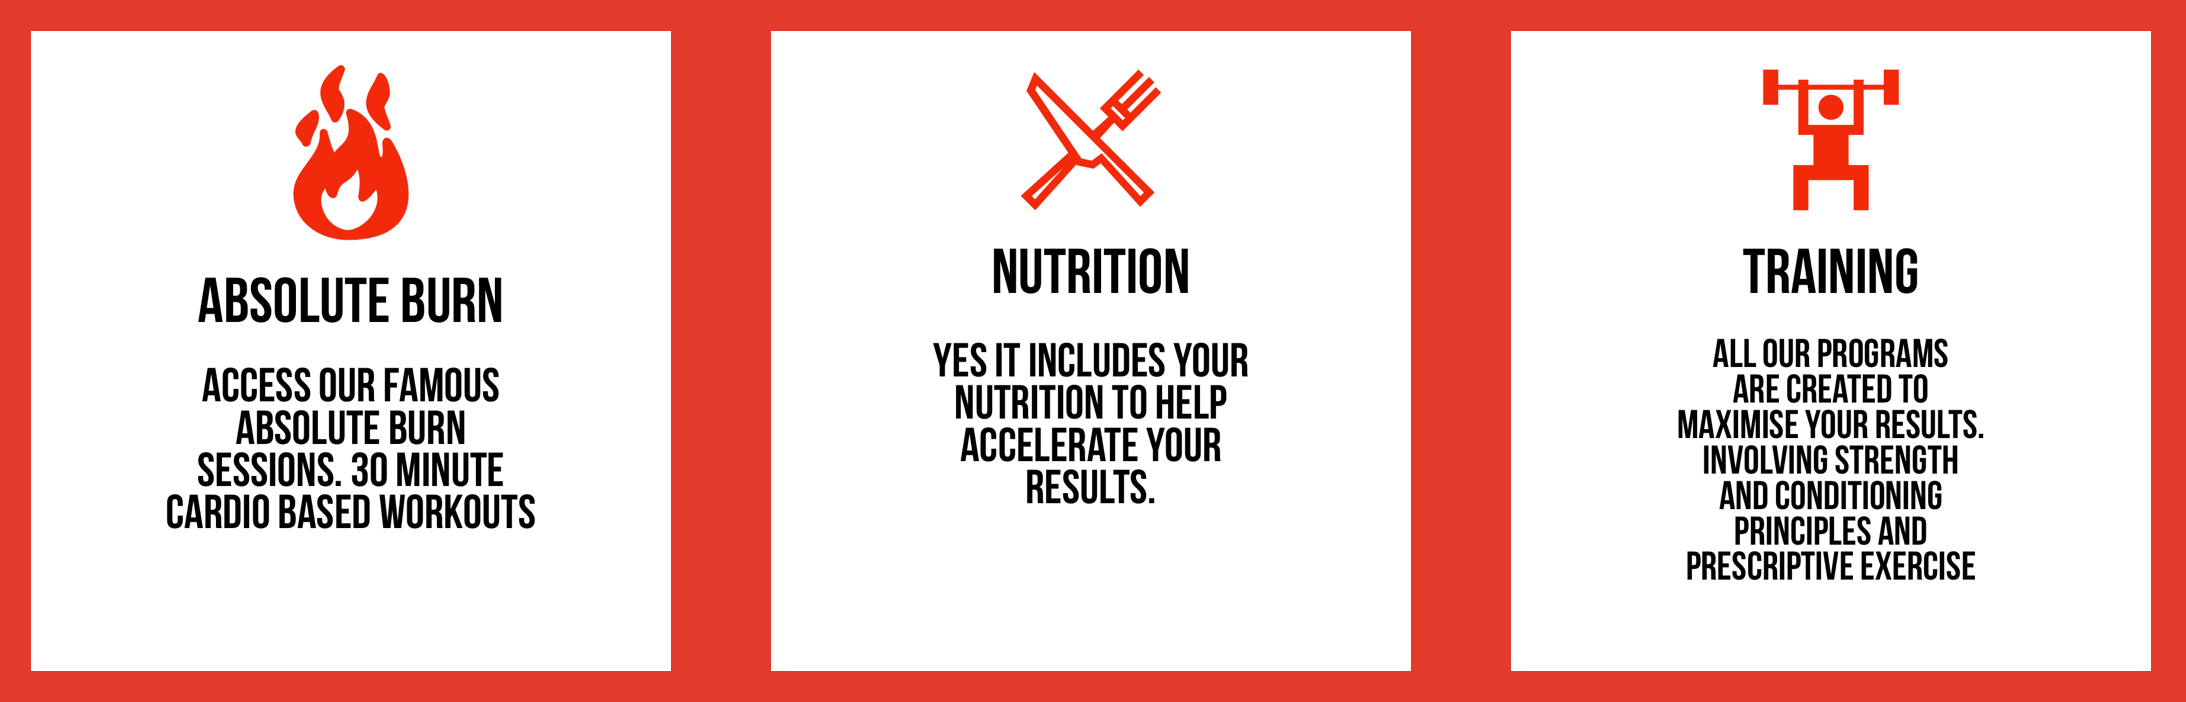 Absolute Training & Nutrition 30-Day Fitness Offer - What do you get